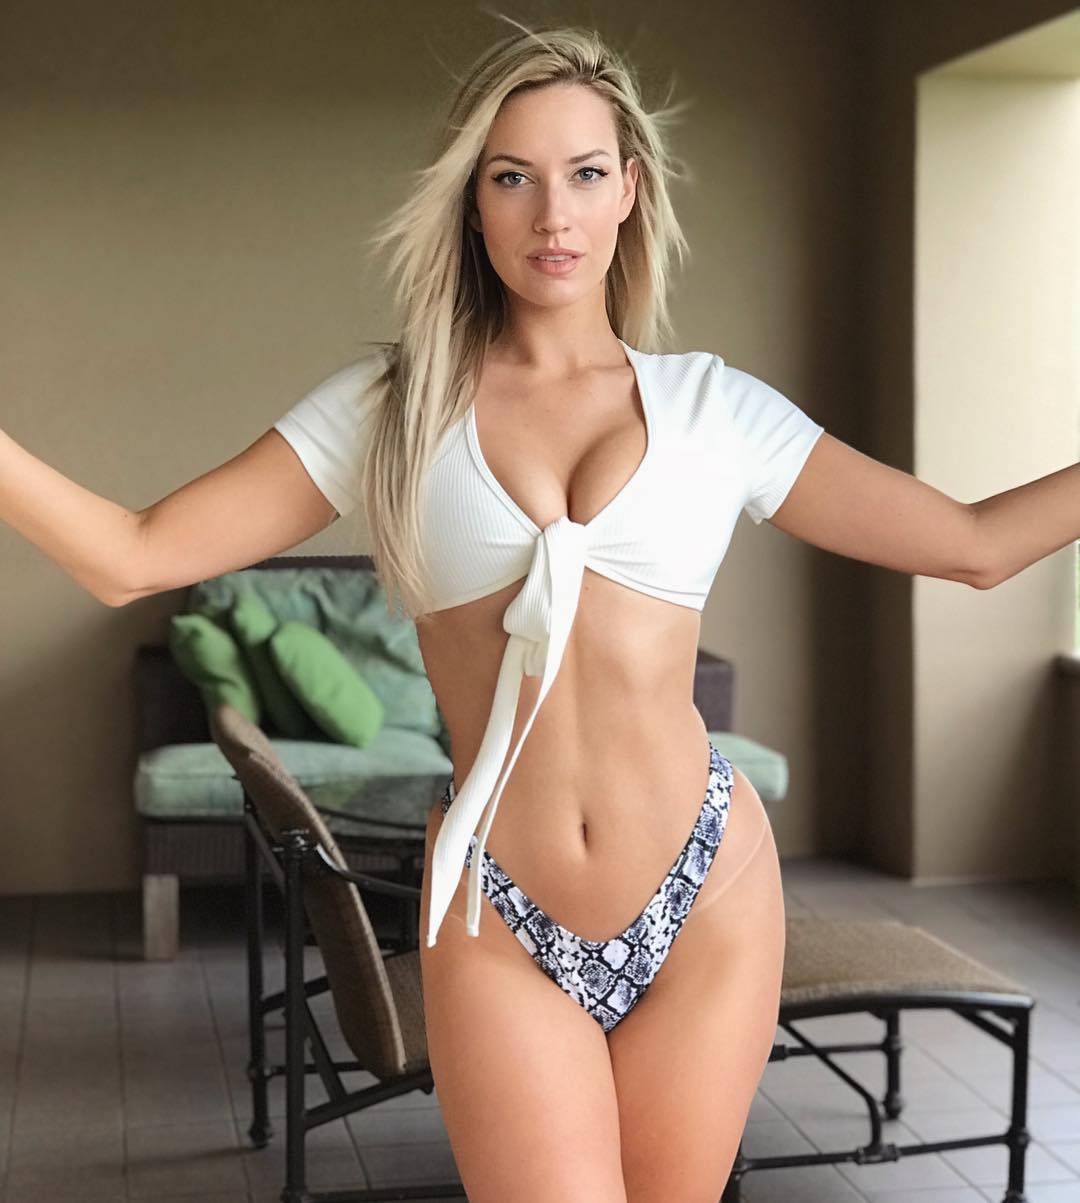 Cute and fascinating paige spiranac bikini, Golf stroke mechanics